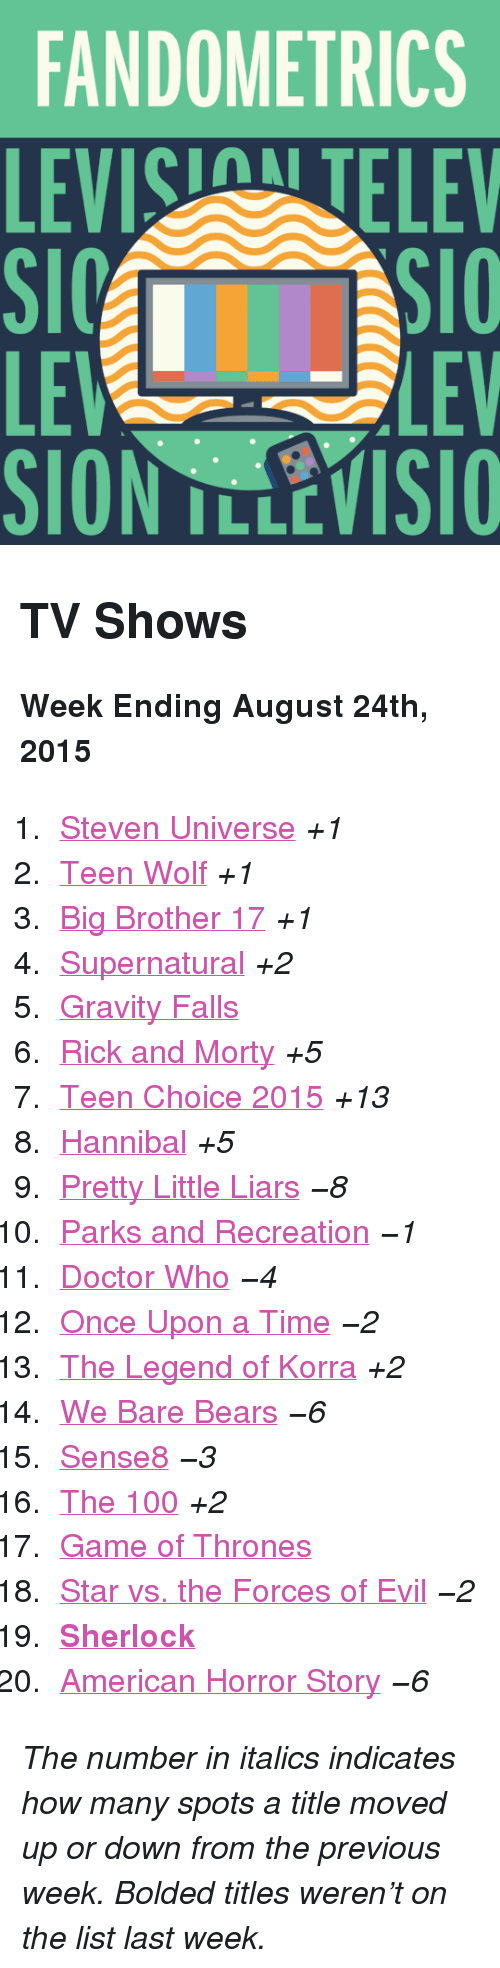 """Parks and Recreation: FANDOMETRICS  LEVIS TELEV  LE  SION TLLEVISIO  LEV <h2>TV Shows</h2><p><b>Week Ending August 24th, 2015</b></p><ol><li><a href=""""http://www.tumblr.com/search/steven%20universe"""">Steven Universe</a><i>+1</i></li>  <li><a href=""""http://www.tumblr.com/search/teen%20wolf"""">Teen Wolf</a><i>+1</i></li>  <li><a href=""""http://www.tumblr.com/search/bb17"""">Big Brother 17</a><i>+1</i></li>  <li><a href=""""http://www.tumblr.com/search/supernatural"""">Supernatural</a><i>+2</i></li>  <li><a href=""""http://www.tumblr.com/search/gravity%20falls"""">Gravity Falls</a></li>  <li><a href=""""http://www.tumblr.com/search/rick%20and%20morty"""">Rick and Morty</a><i>+5</i></li>  <li><a href=""""http://www.tumblr.com/search/teen%20choice%20awards"""">Teen Choice 2015</a><i>+13</i></li>  <li><a href=""""http://www.tumblr.com/search/hannibal"""">Hannibal</a><i>+5</i></li>  <li><a href=""""http://www.tumblr.com/search/pretty%20little%20liars"""">Pretty Little Liars</a><i>−8</i></li>  <li><a href=""""http://www.tumblr.com/search/parks%20and%20recreation"""">Parks and Recreation</a><i>−1</i></li>  <li><a href=""""http://www.tumblr.com/search/doctor%20who"""">Doctor Who</a><i>−4</i></li>  <li><a href=""""http://www.tumblr.com/search/ouat"""">Once Upon a Time</a><i>−2</i></li>  <li><a href=""""http://www.tumblr.com/search/legend%20of%20korra"""">The Legend of Korra</a><i>+2</i></li>  <li><a href=""""http://www.tumblr.com/search/we%20bare%20bears"""">We Bare Bears</a><i>−6</i></li>  <li><a href=""""http://www.tumblr.com/search/sense8"""">Sense8</a><i>−3</i></li>  <li><a href=""""http://www.tumblr.com/search/the%20100"""">The 100</a><i>+2</i></li>  <li><a href=""""http://www.tumblr.com/search/game%20of%20thrones"""">Game of Thrones</a></li>  <li><a href=""""http://www.tumblr.com/search/star%20vs%20the%20forces%20of%20evil"""">Star vs. the Forces of Evil</a><i>−2</i></li>  <li><a href=""""http://www.tumblr.com/search/sherlock""""><b>Sherlock</b></a></li>  <li><a href=""""http://www.tumblr.com/search/american%20horror%20story"""">American Horror Story</a><i>−6</i></li></ol><p><i>Th"""